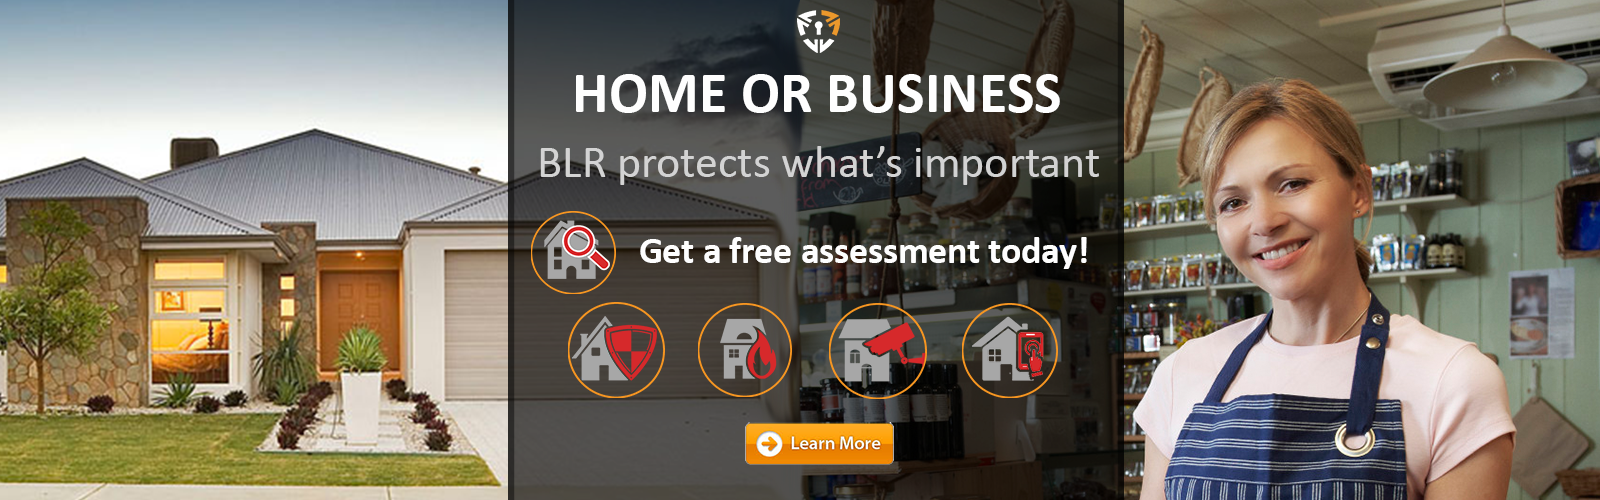 BLR Group Security - Free Security Assessment